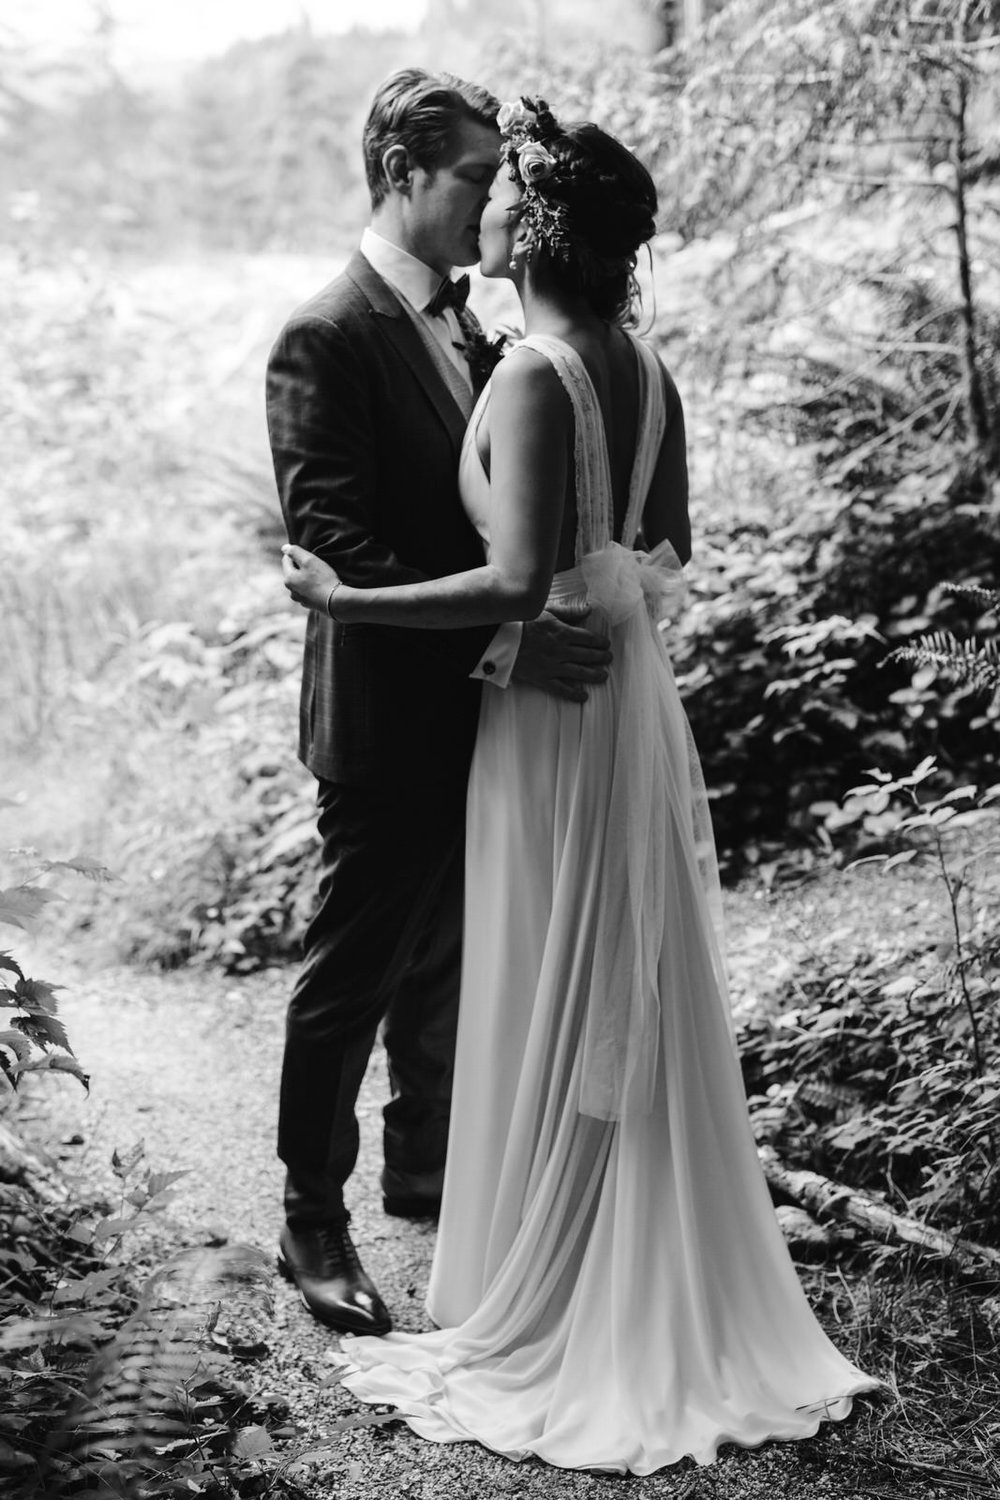 Sunshine Coast Vancouver Wedding Photographer, Jennifer Picard, 2016 Favourite Wedding Photos